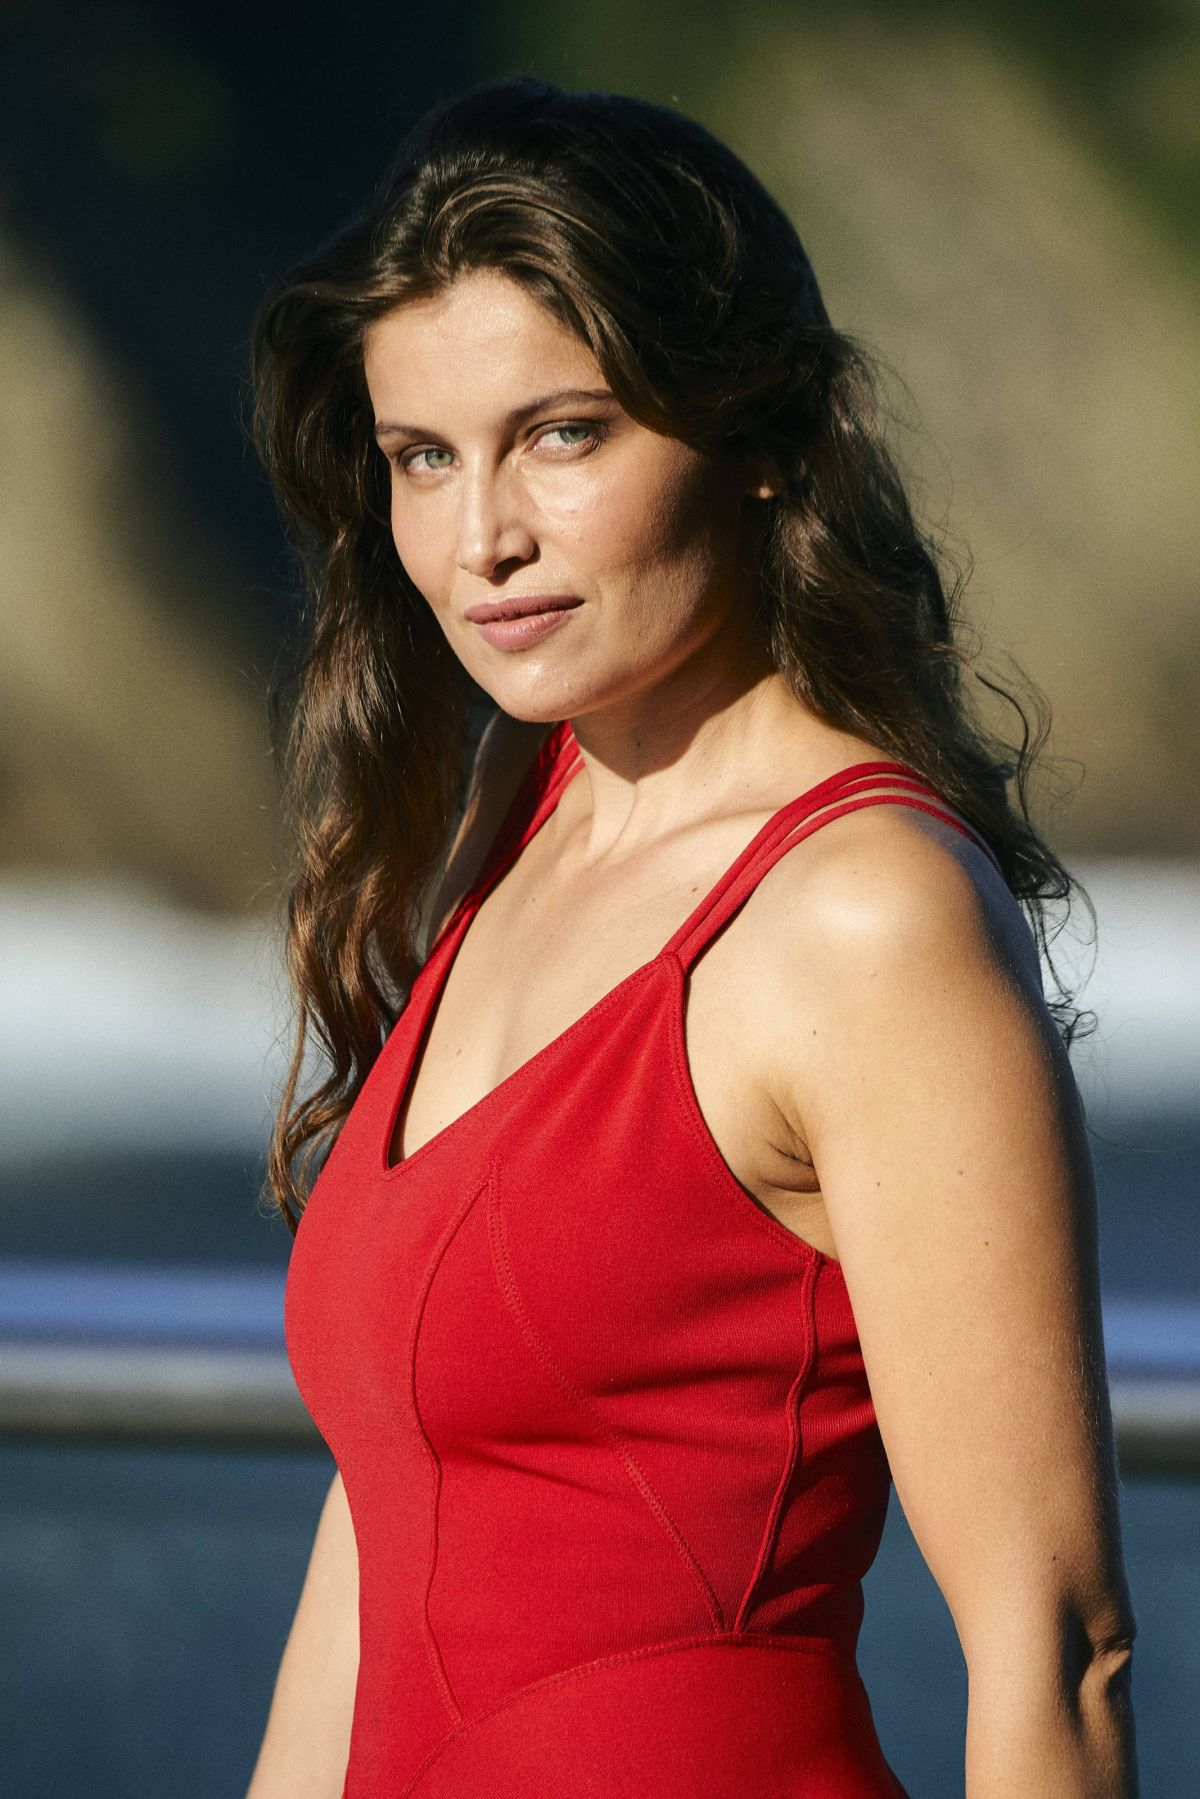 Laetitia Casta Biogrpahy • French Actress and Supermodel